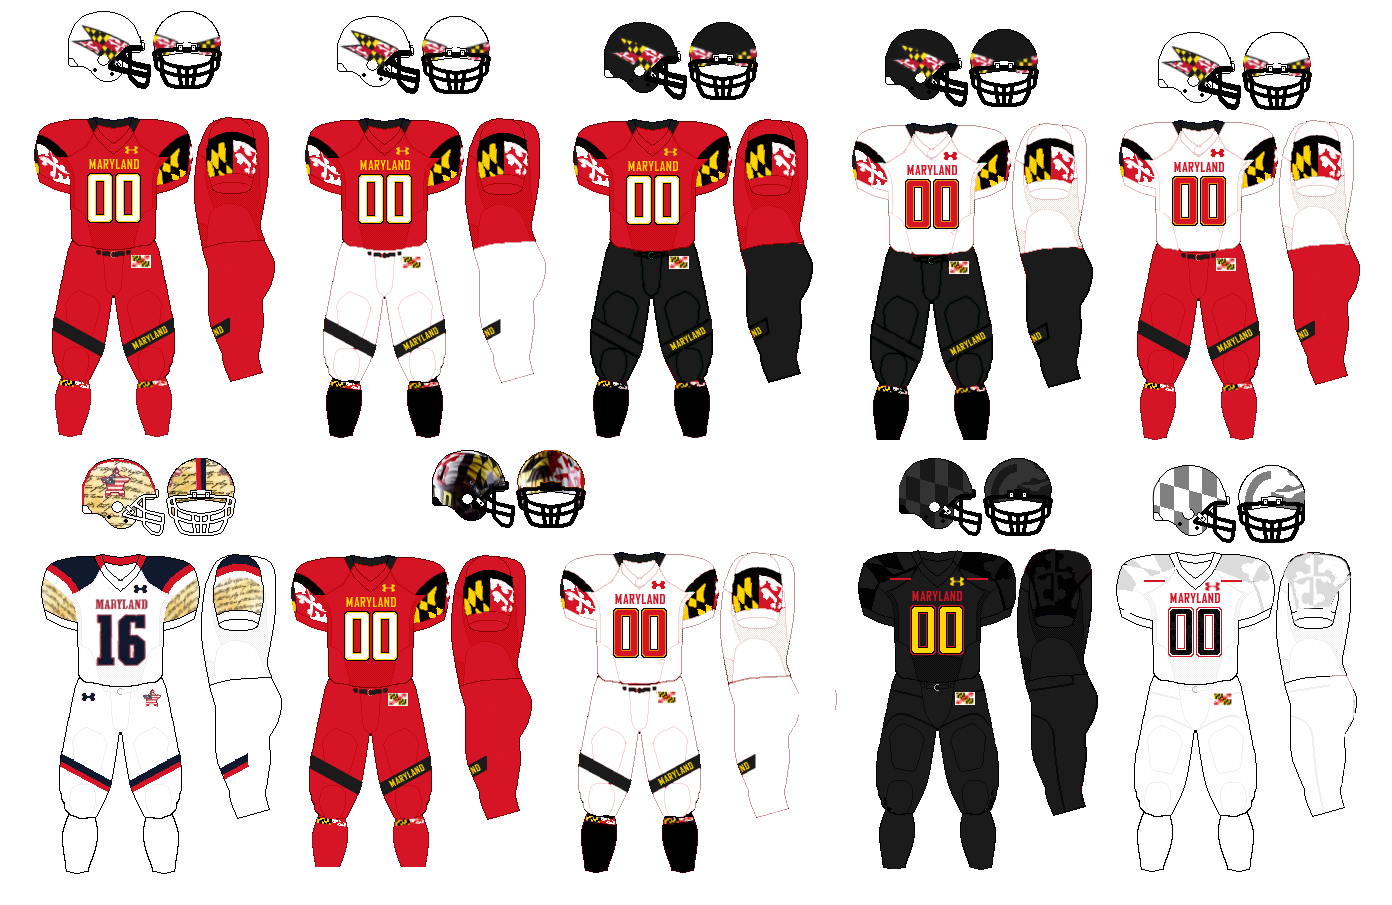 File 2014 Maryland Terrapins Football Uniforms Png